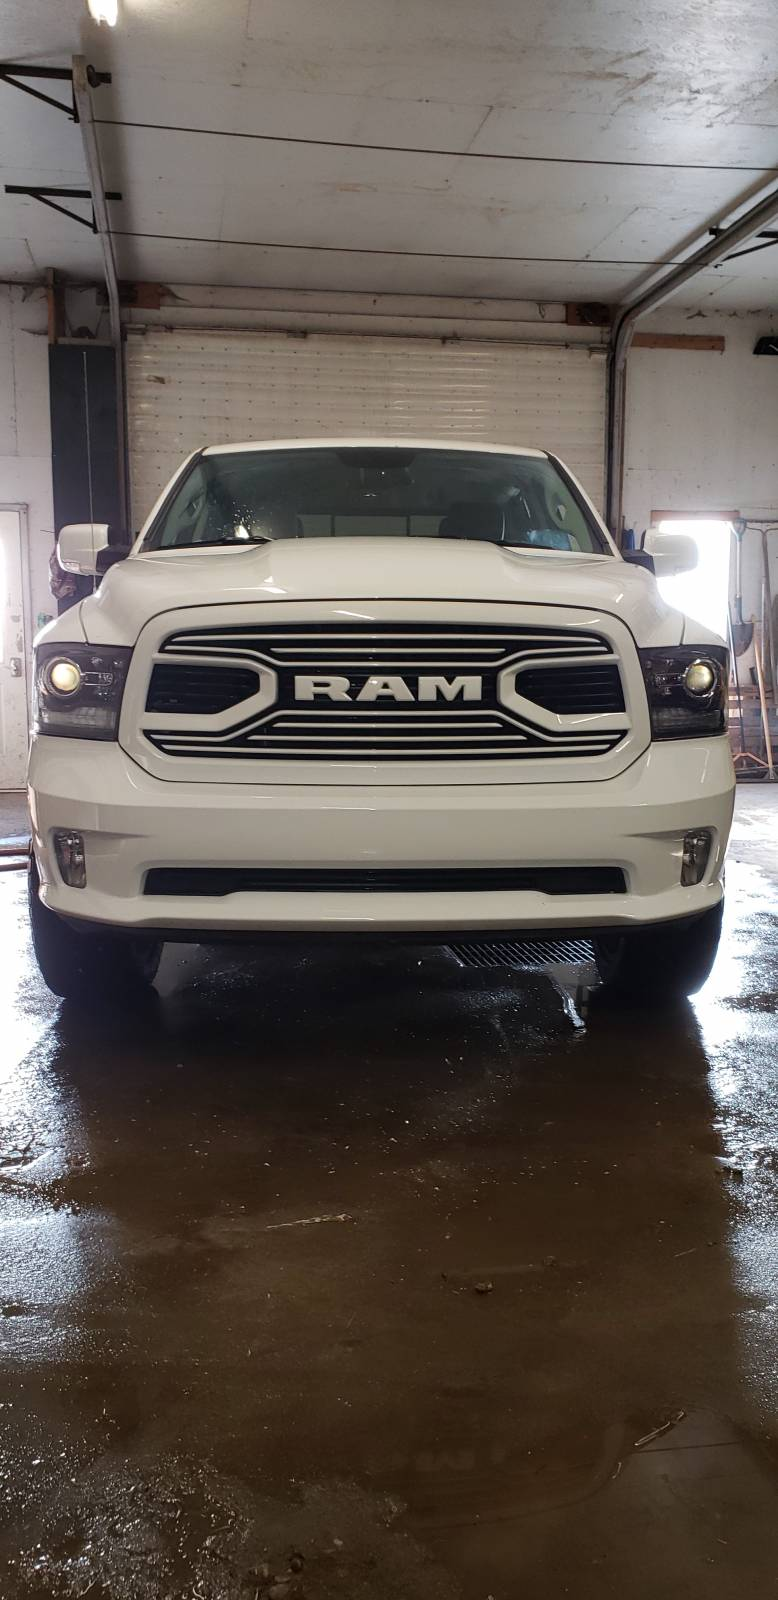 ram lease takeover  prince albert sk  ram  sport automatic awd id leasecosts